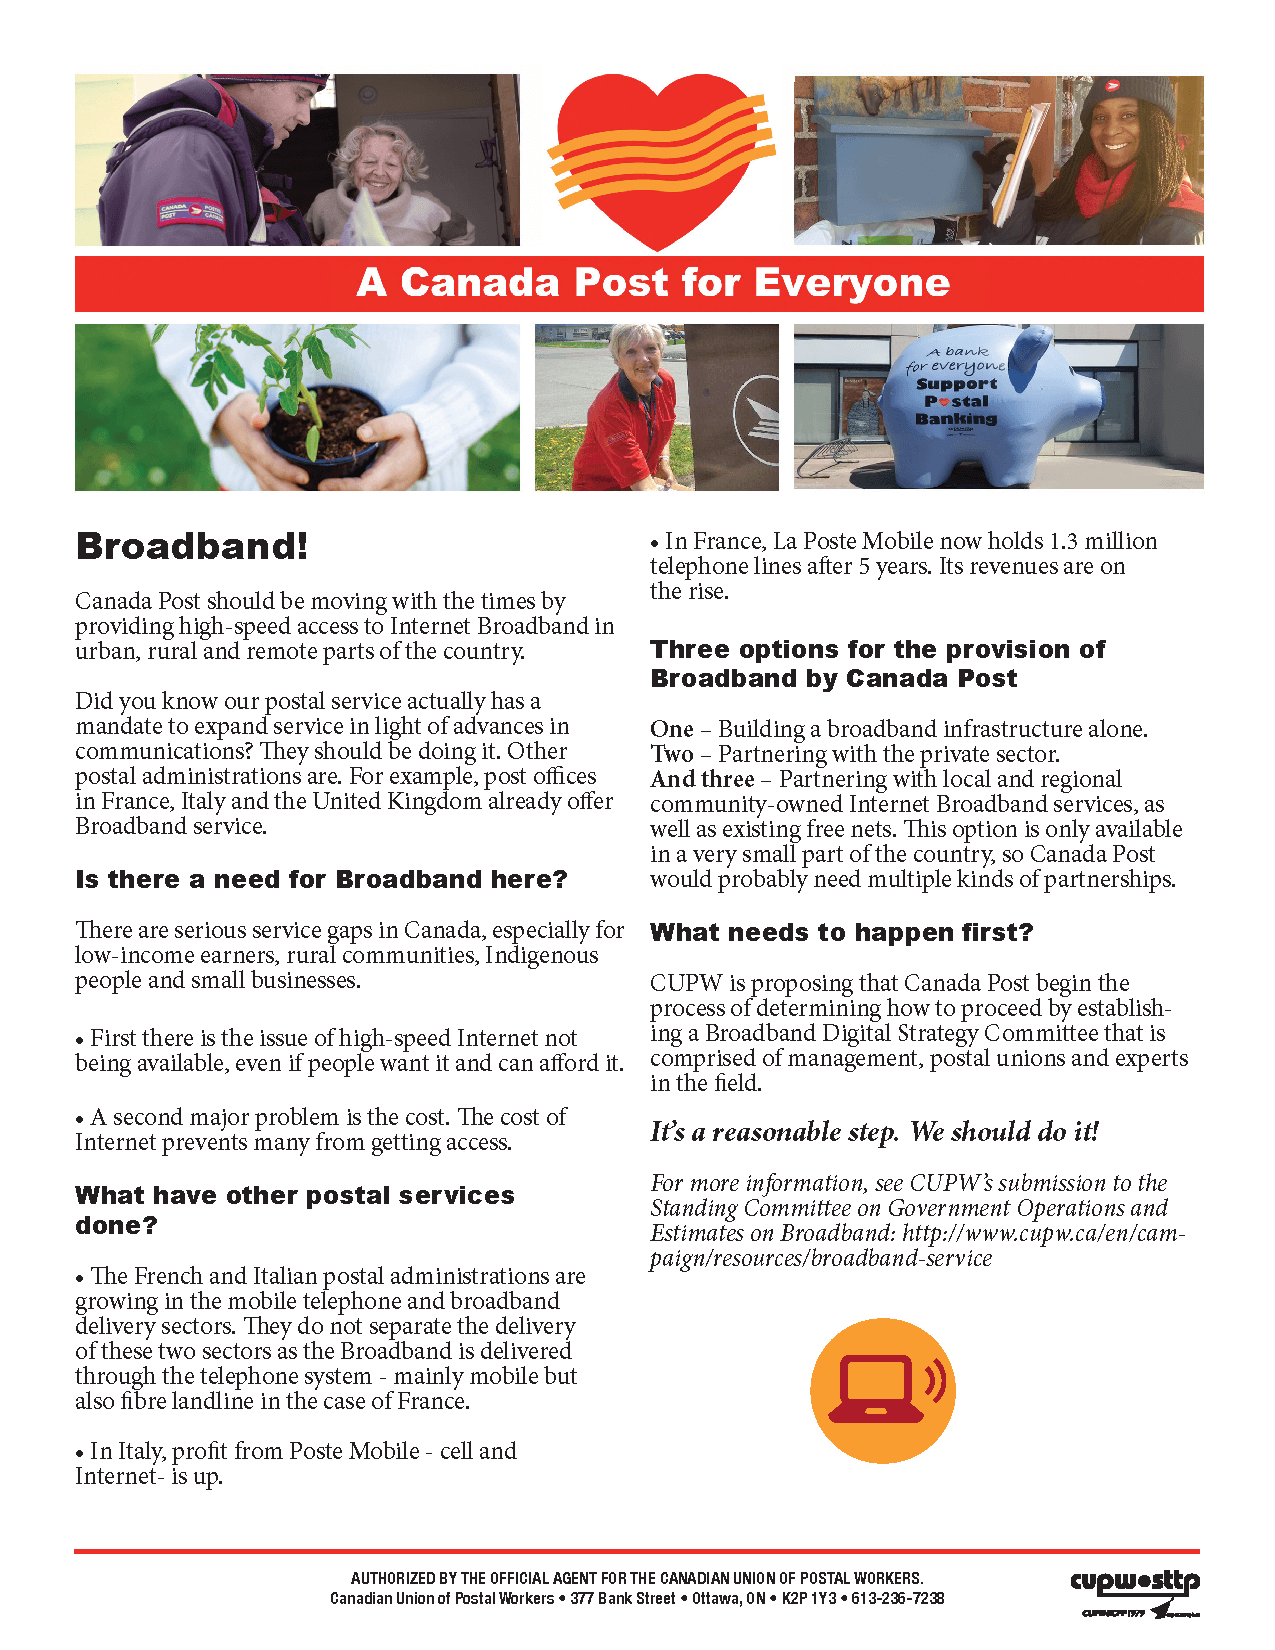 Canada Post should be moving with the times by providing high-speed access to Internet Broadband in urban, rural and remote parts of the country.